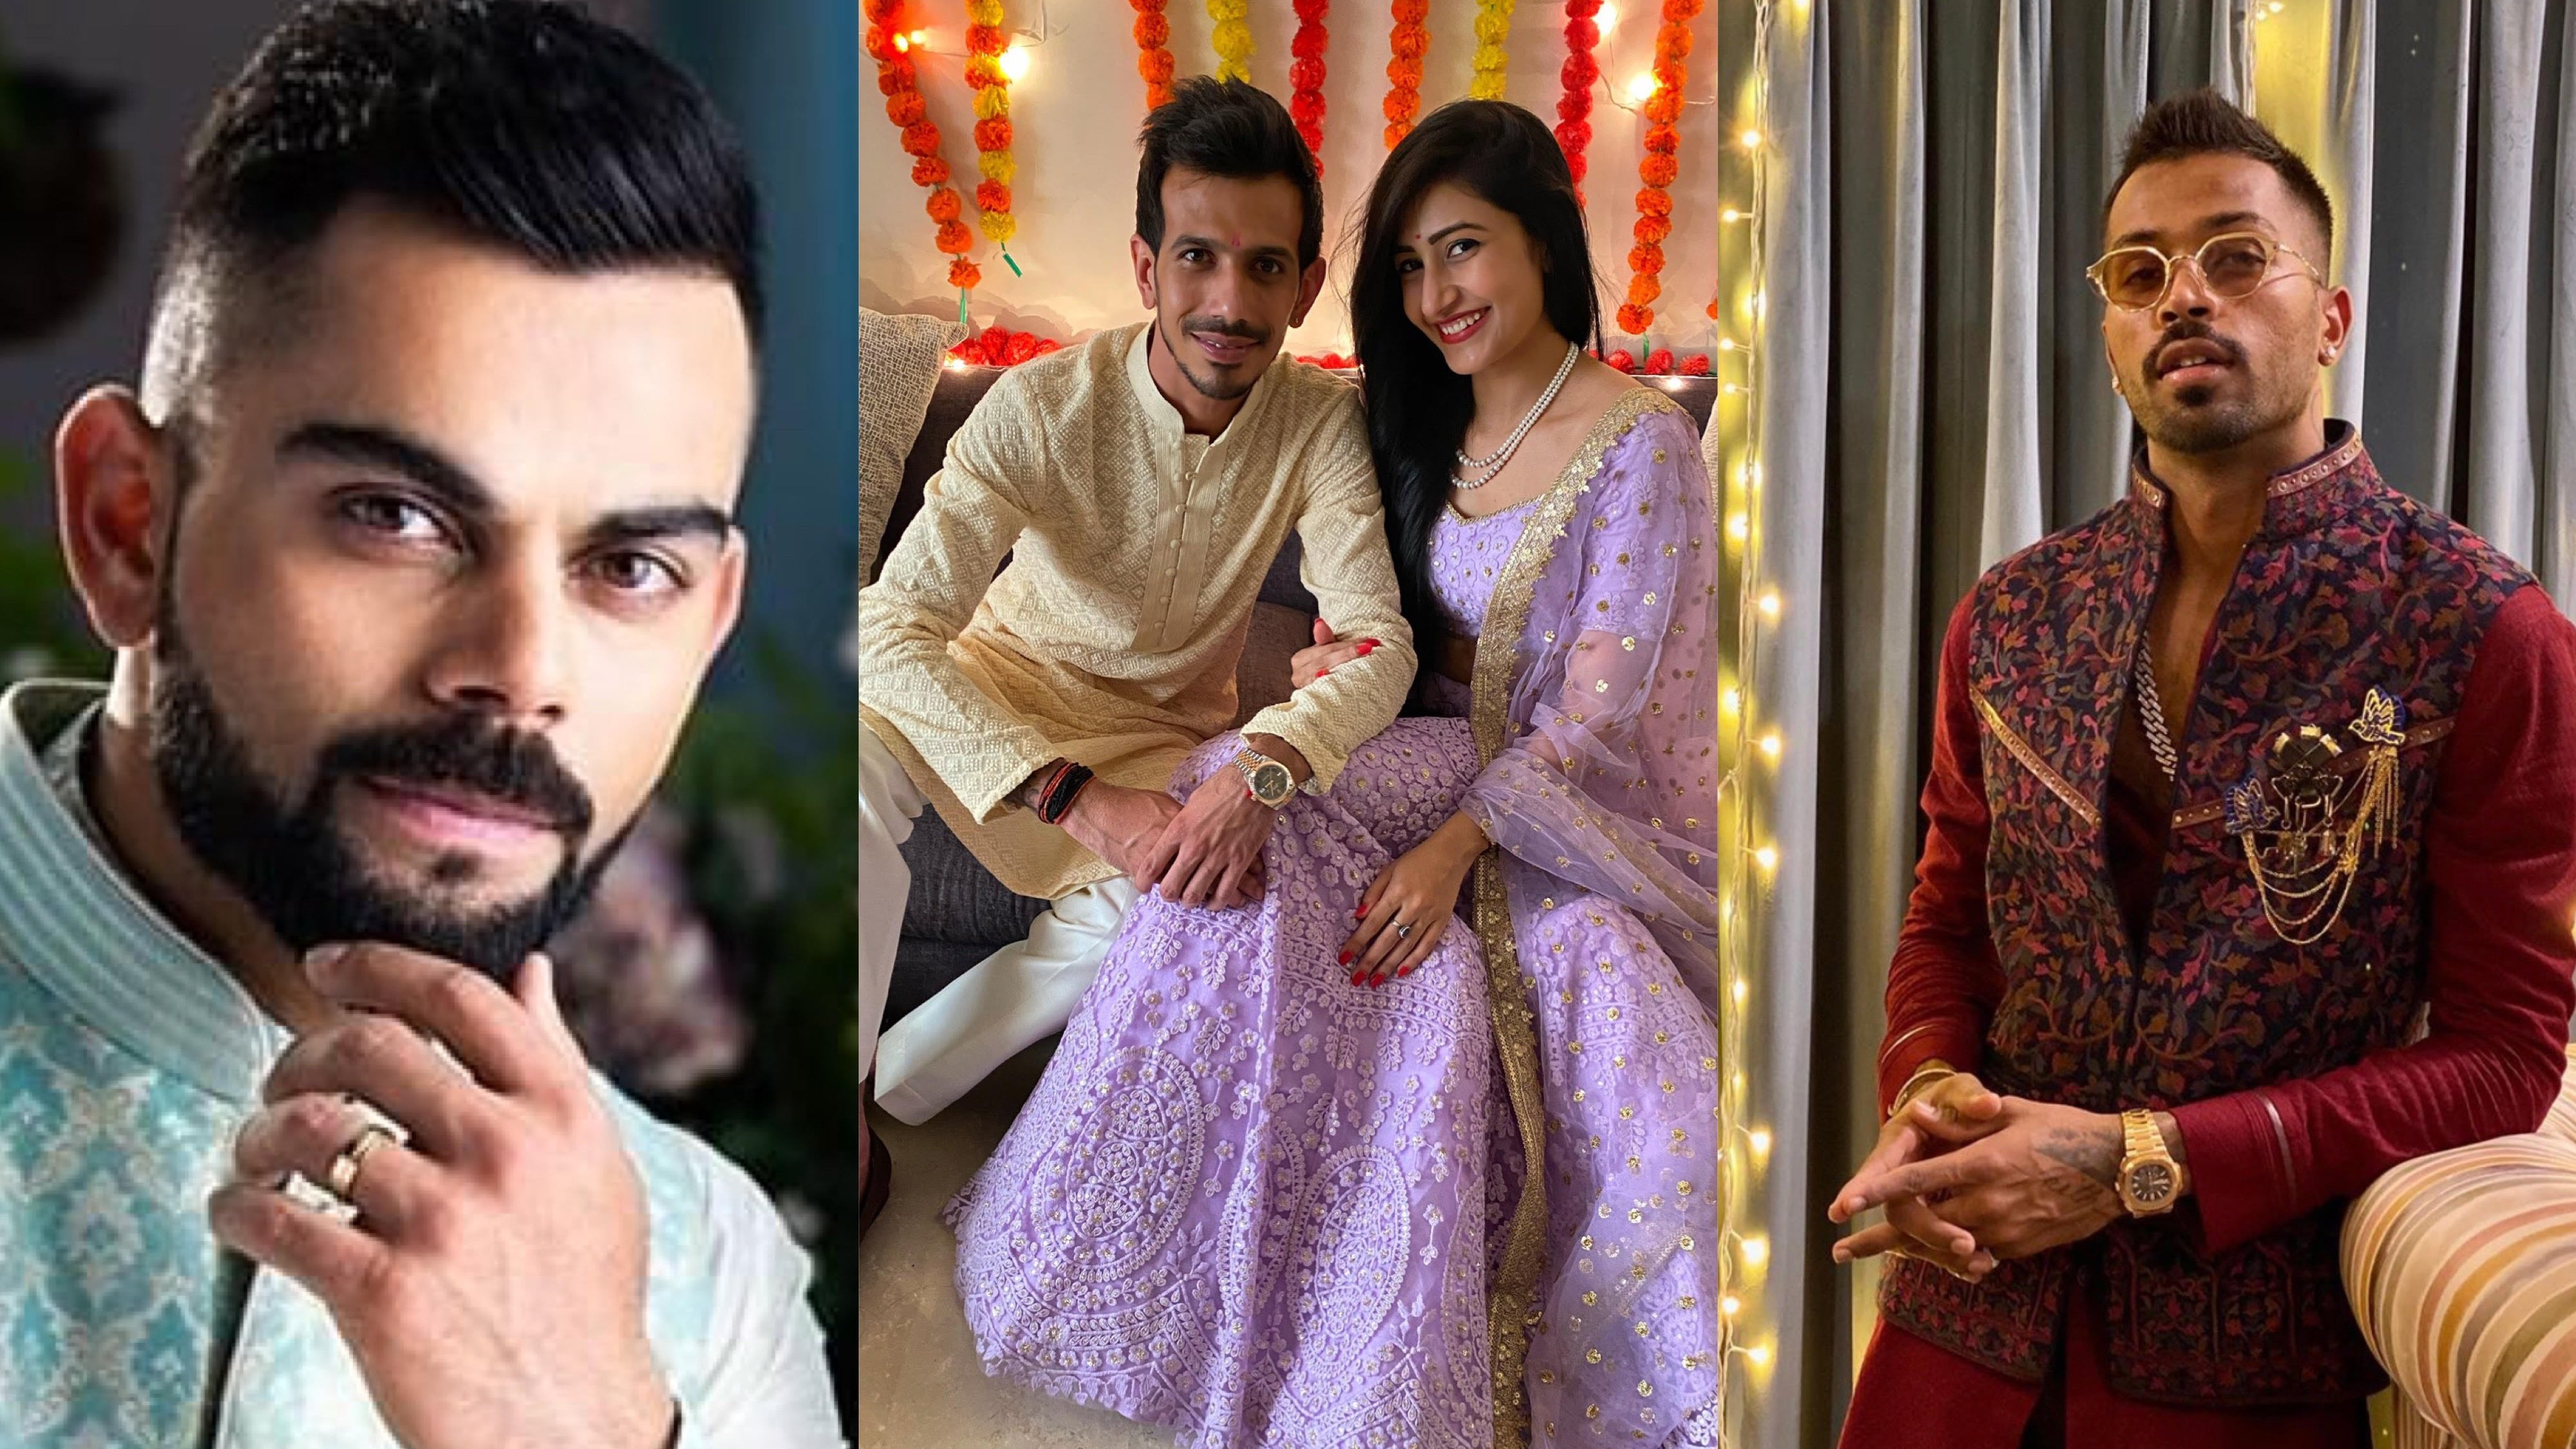 Virat Kohli, Hardik Pandya lead the wishes as Yuzvendra Chahal gets engaged to Dhanashree Verma